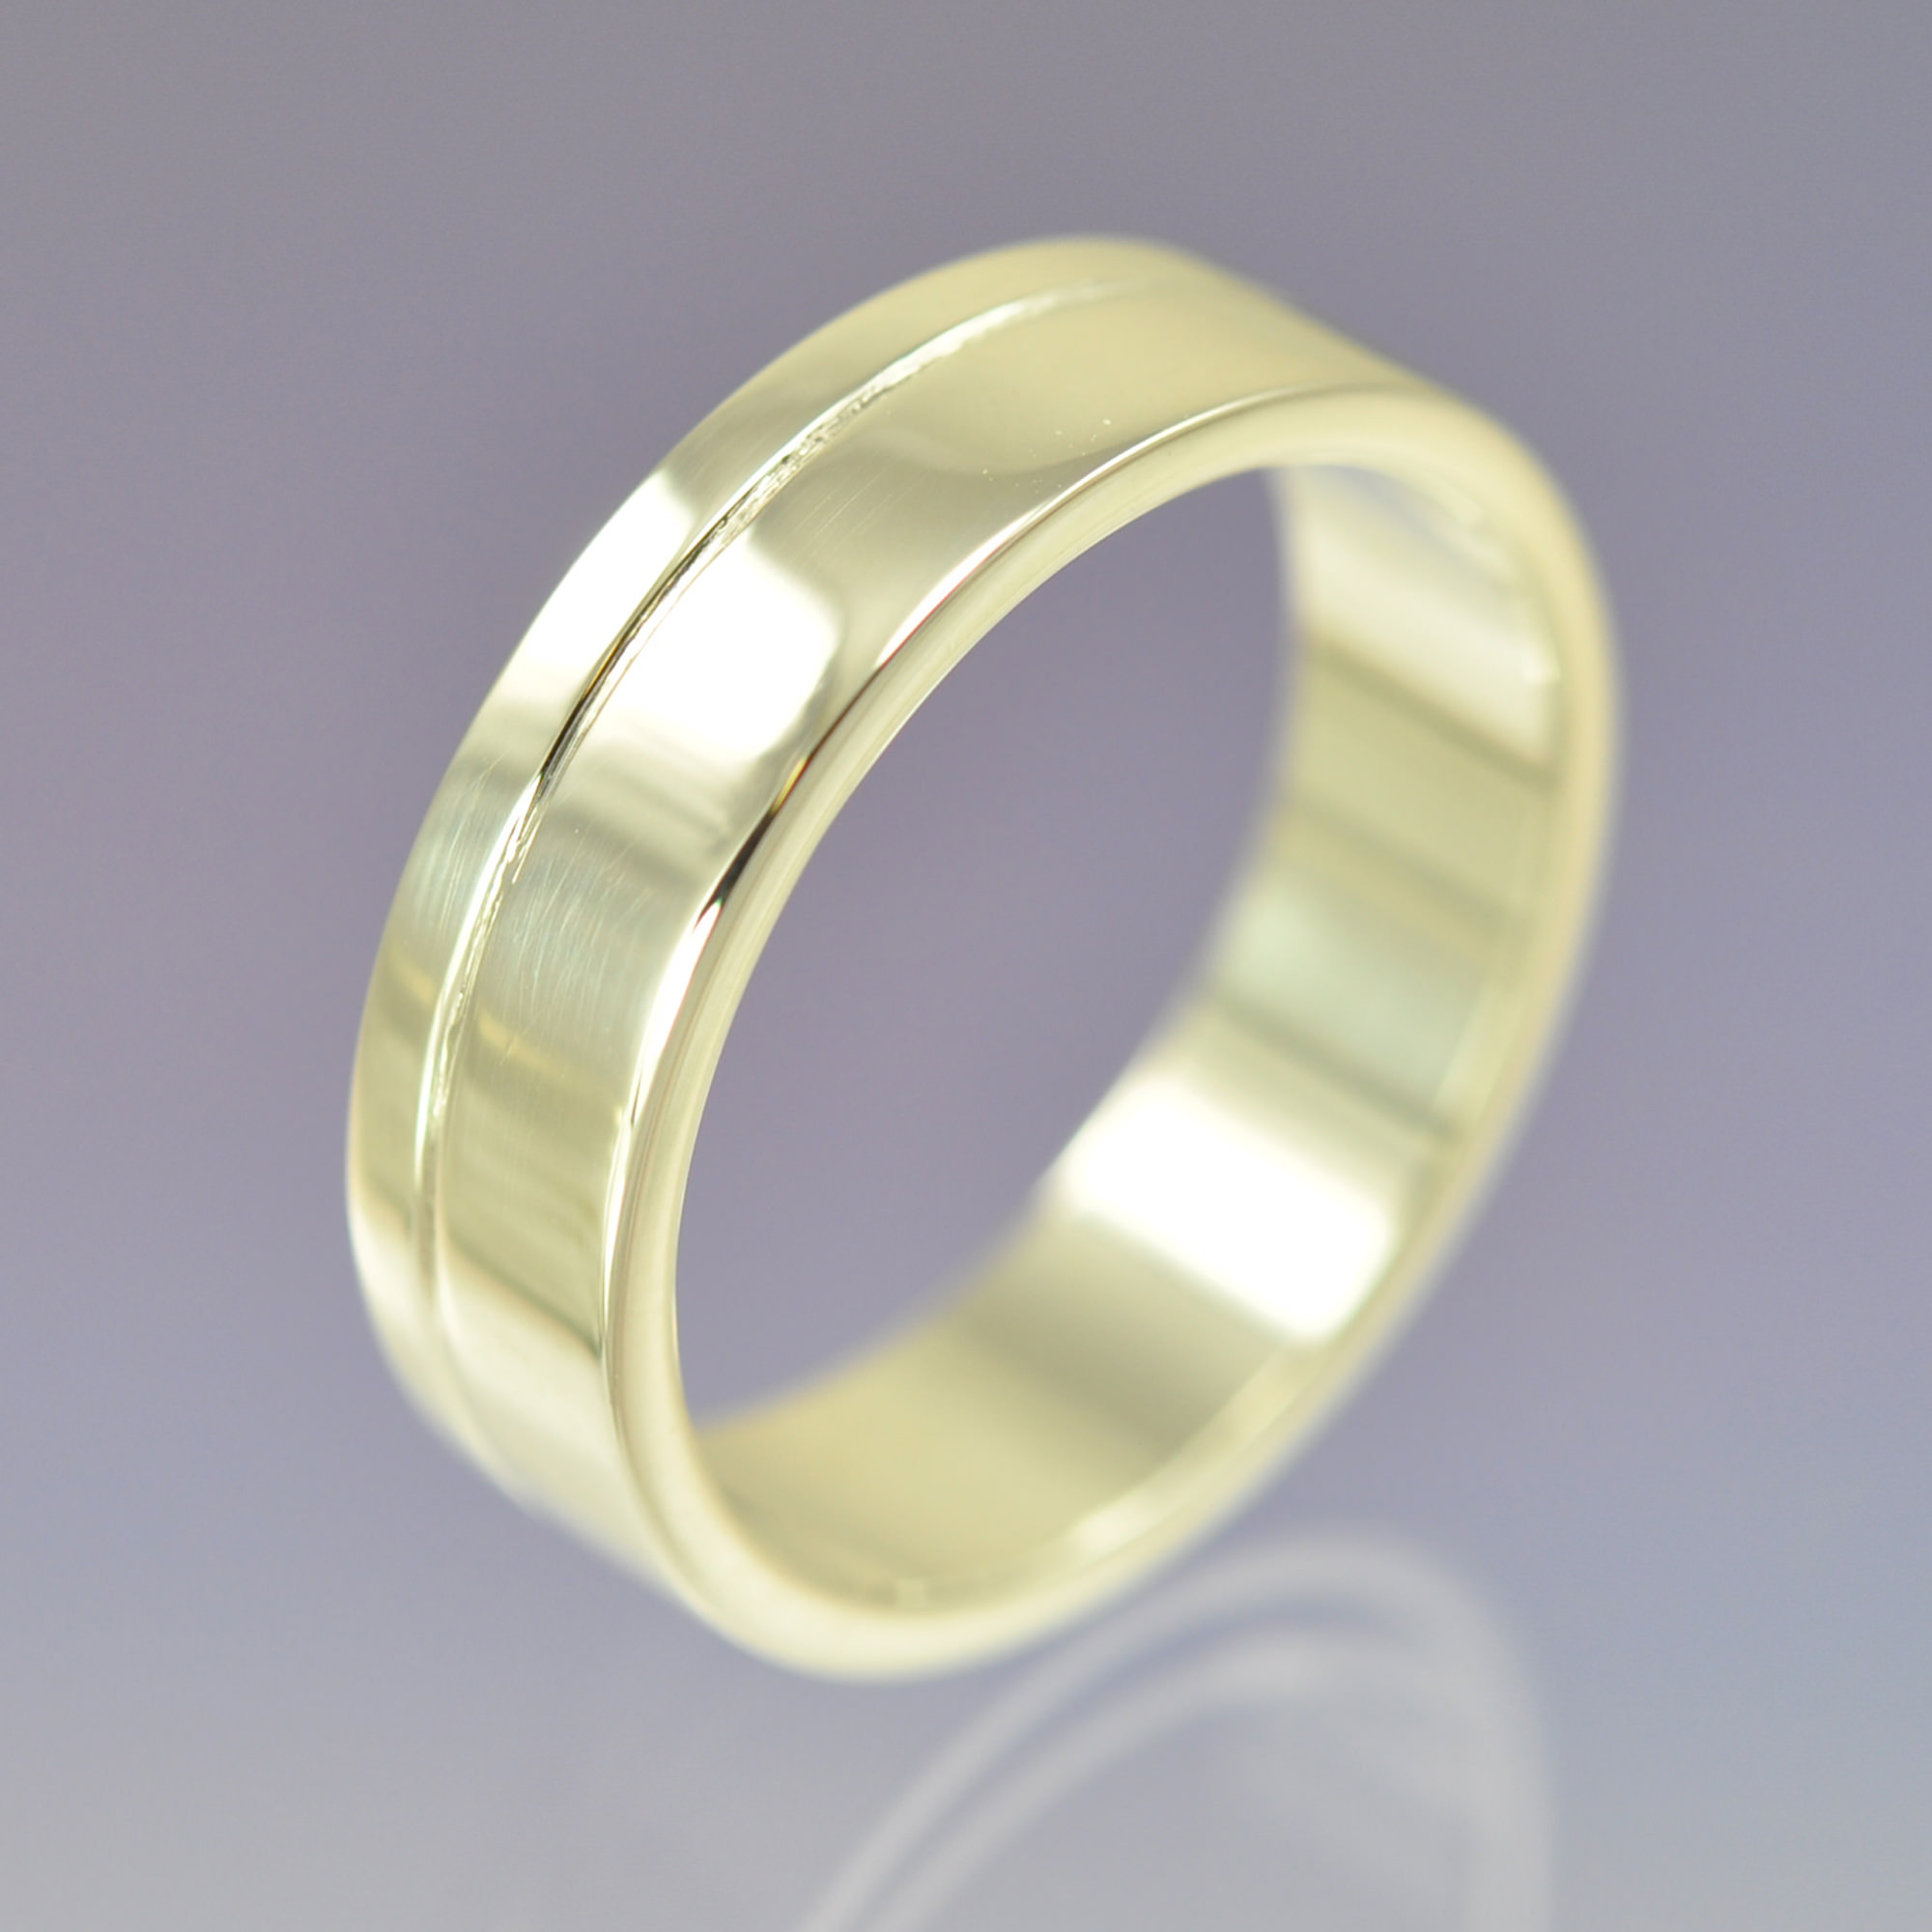 9k Gold Engraved Wedding Ring